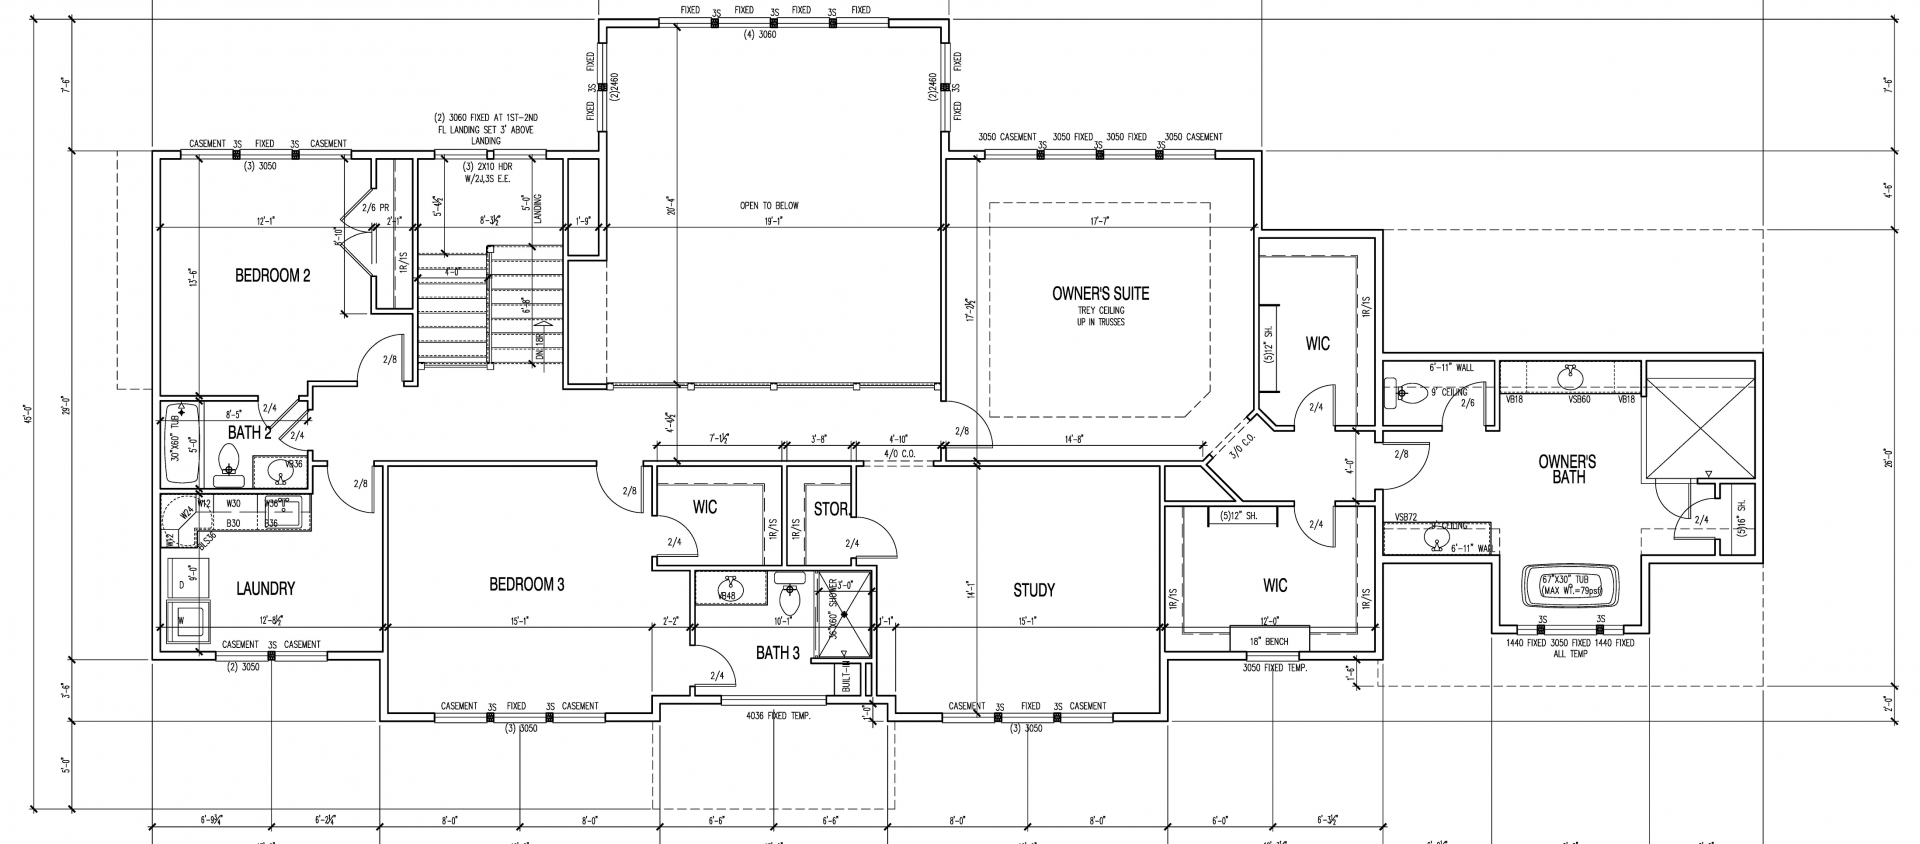 Wild_Olive_2nd_Floor_Plan_edited.png